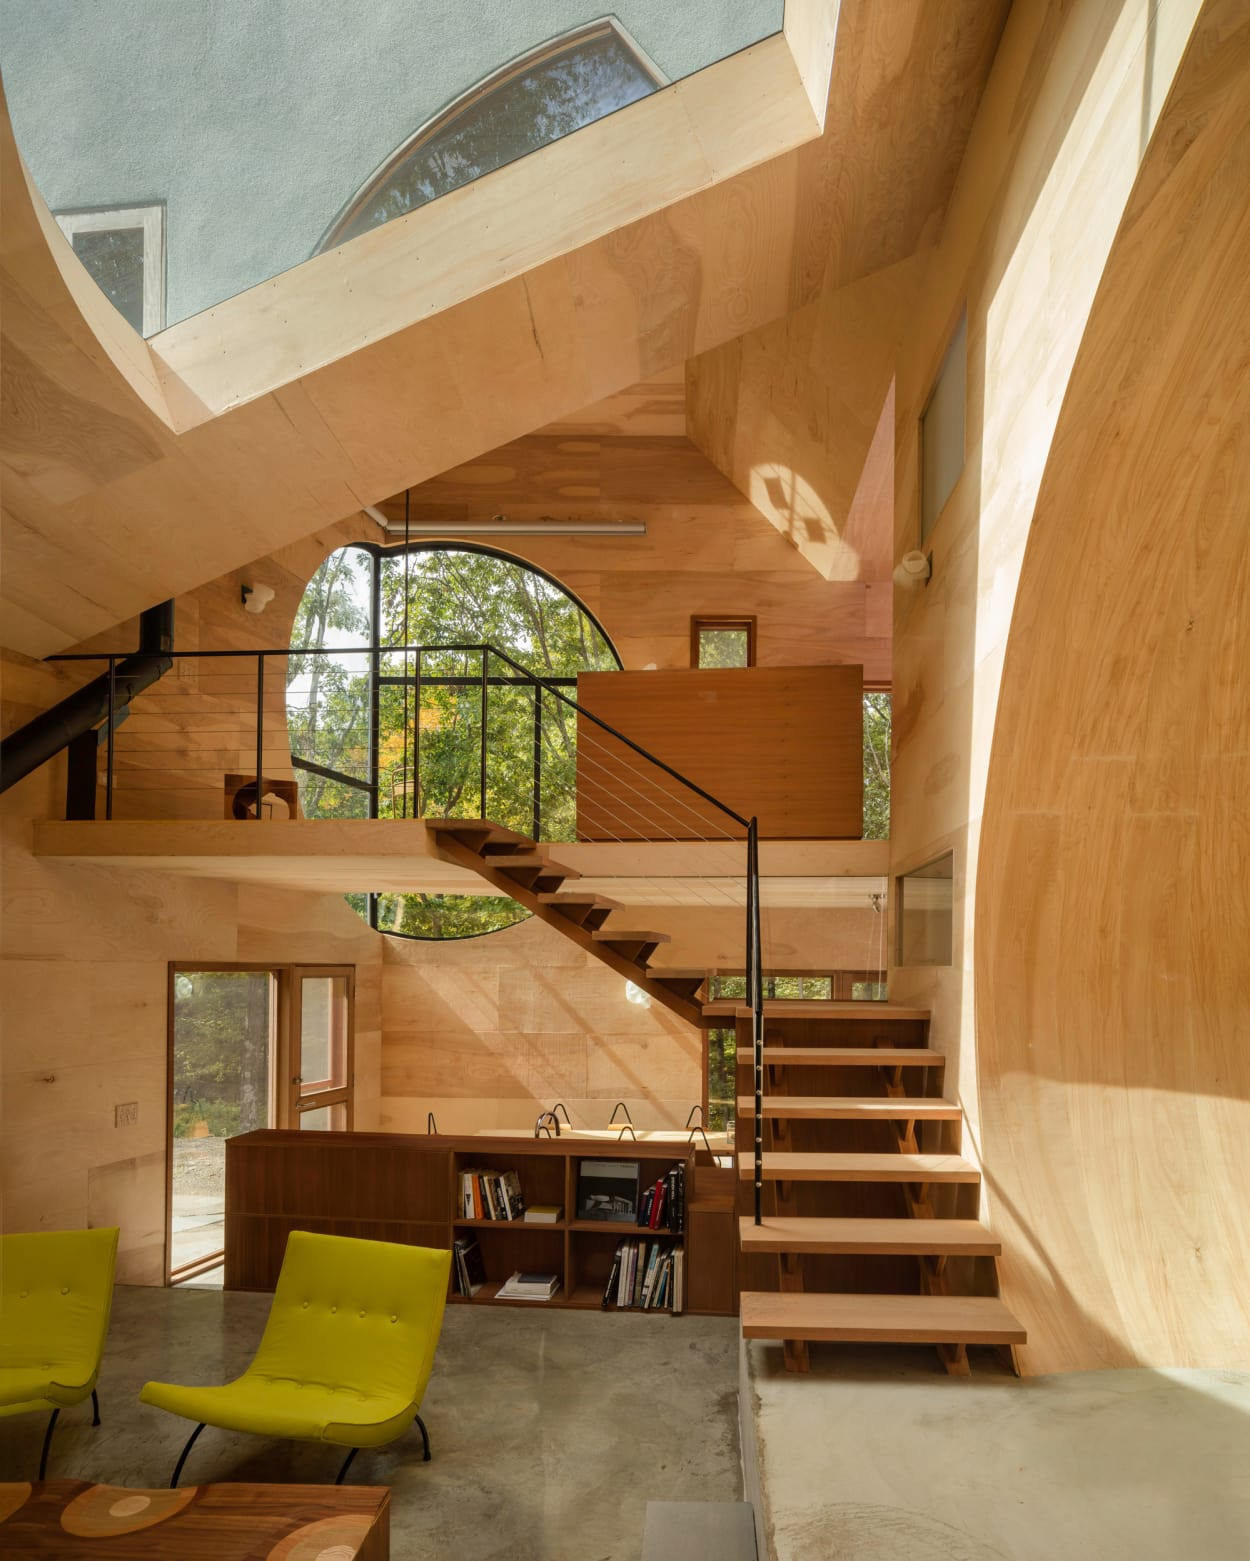 Ex of In House, Steven Holl